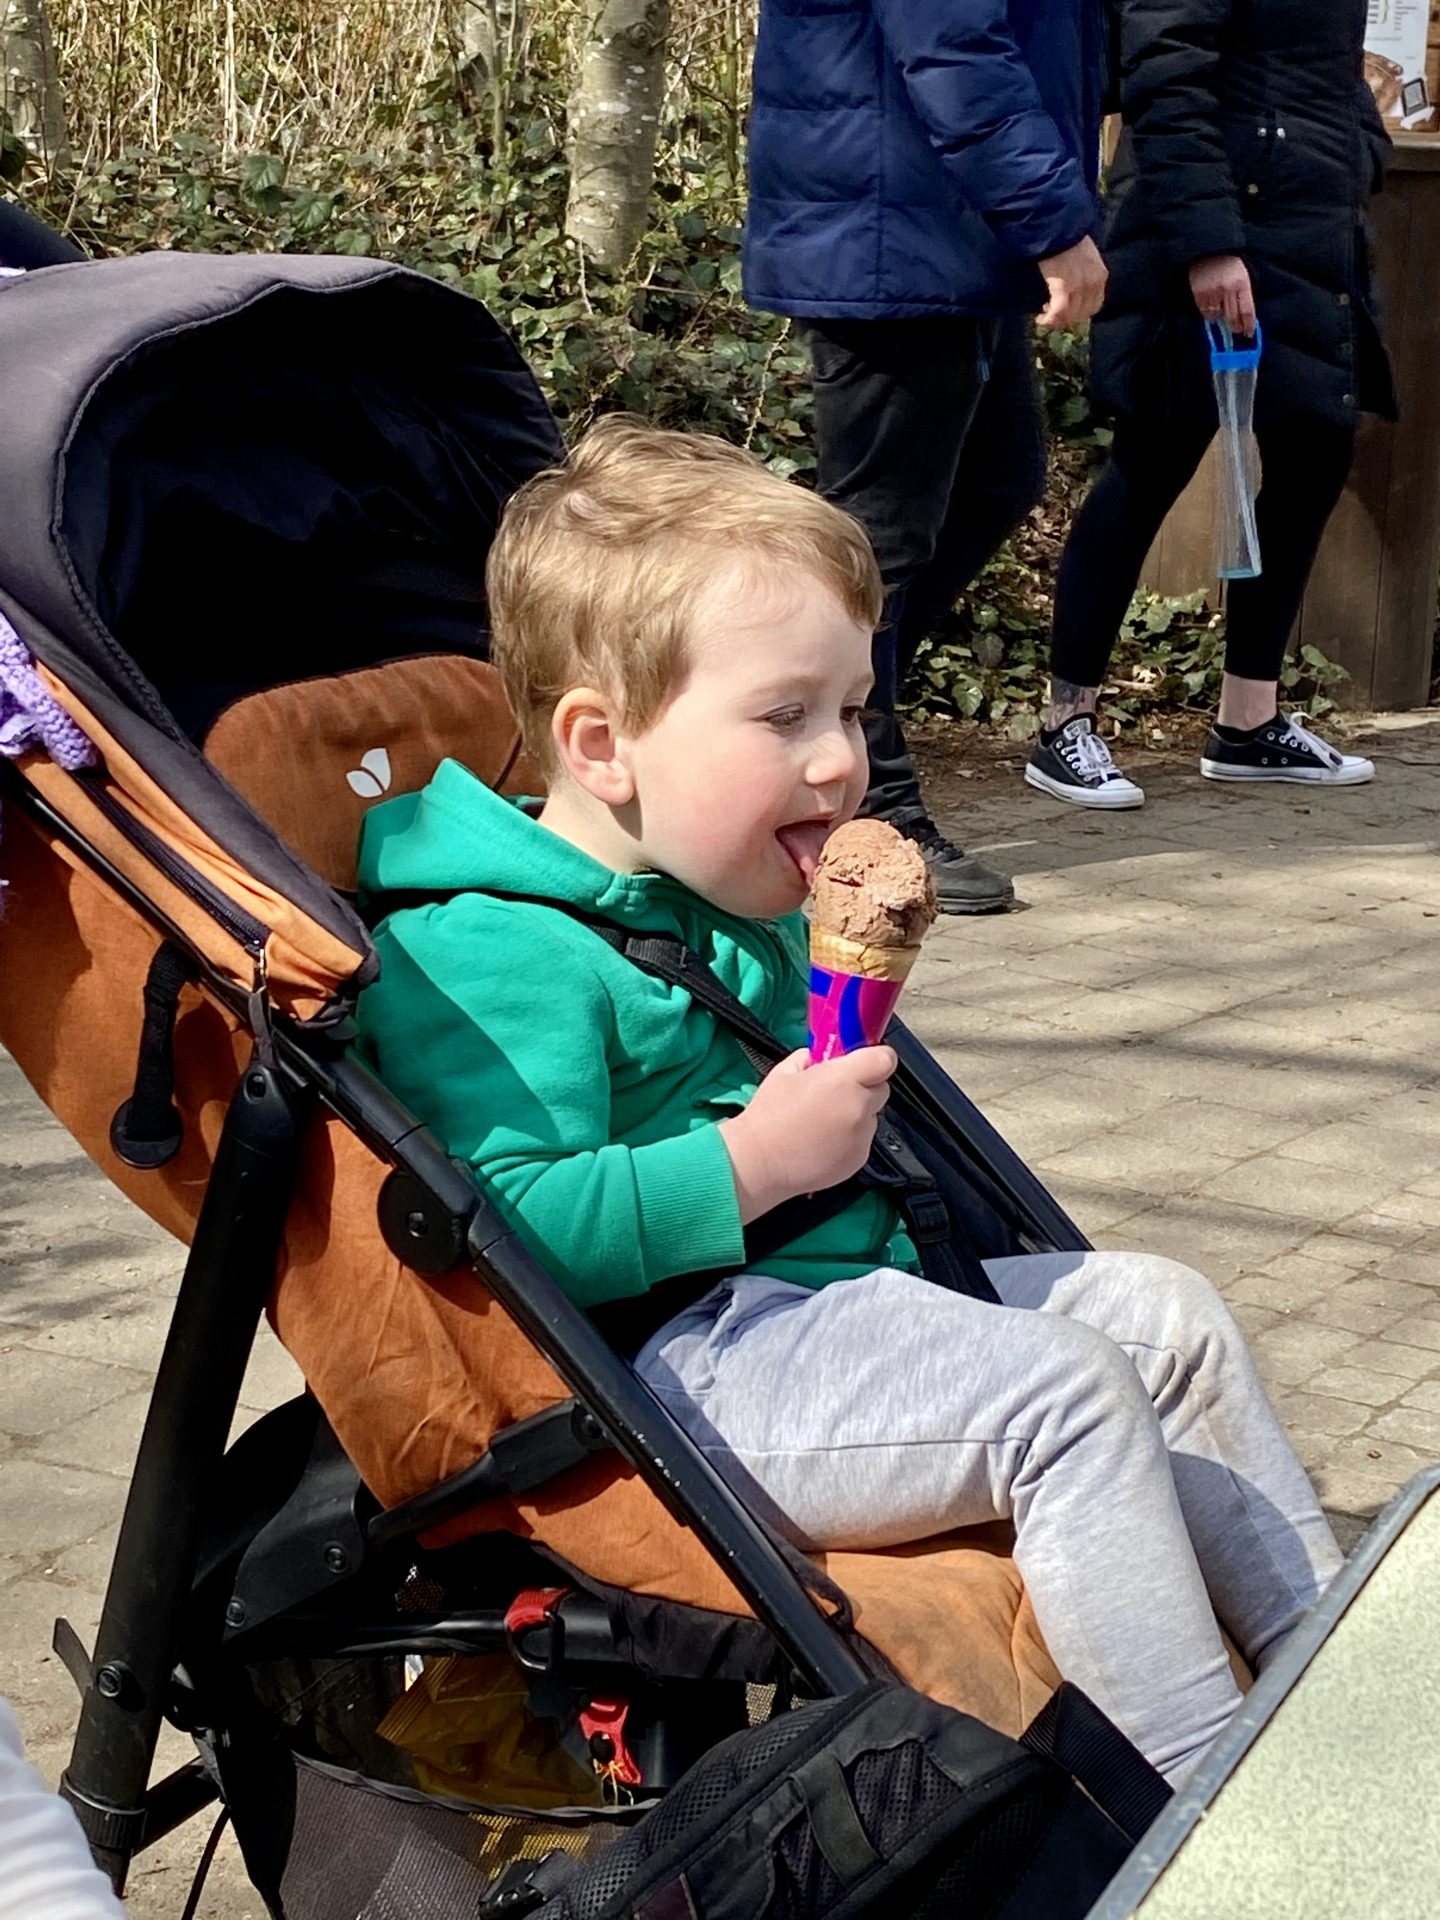 toddler eating an ice-cream in a buggy